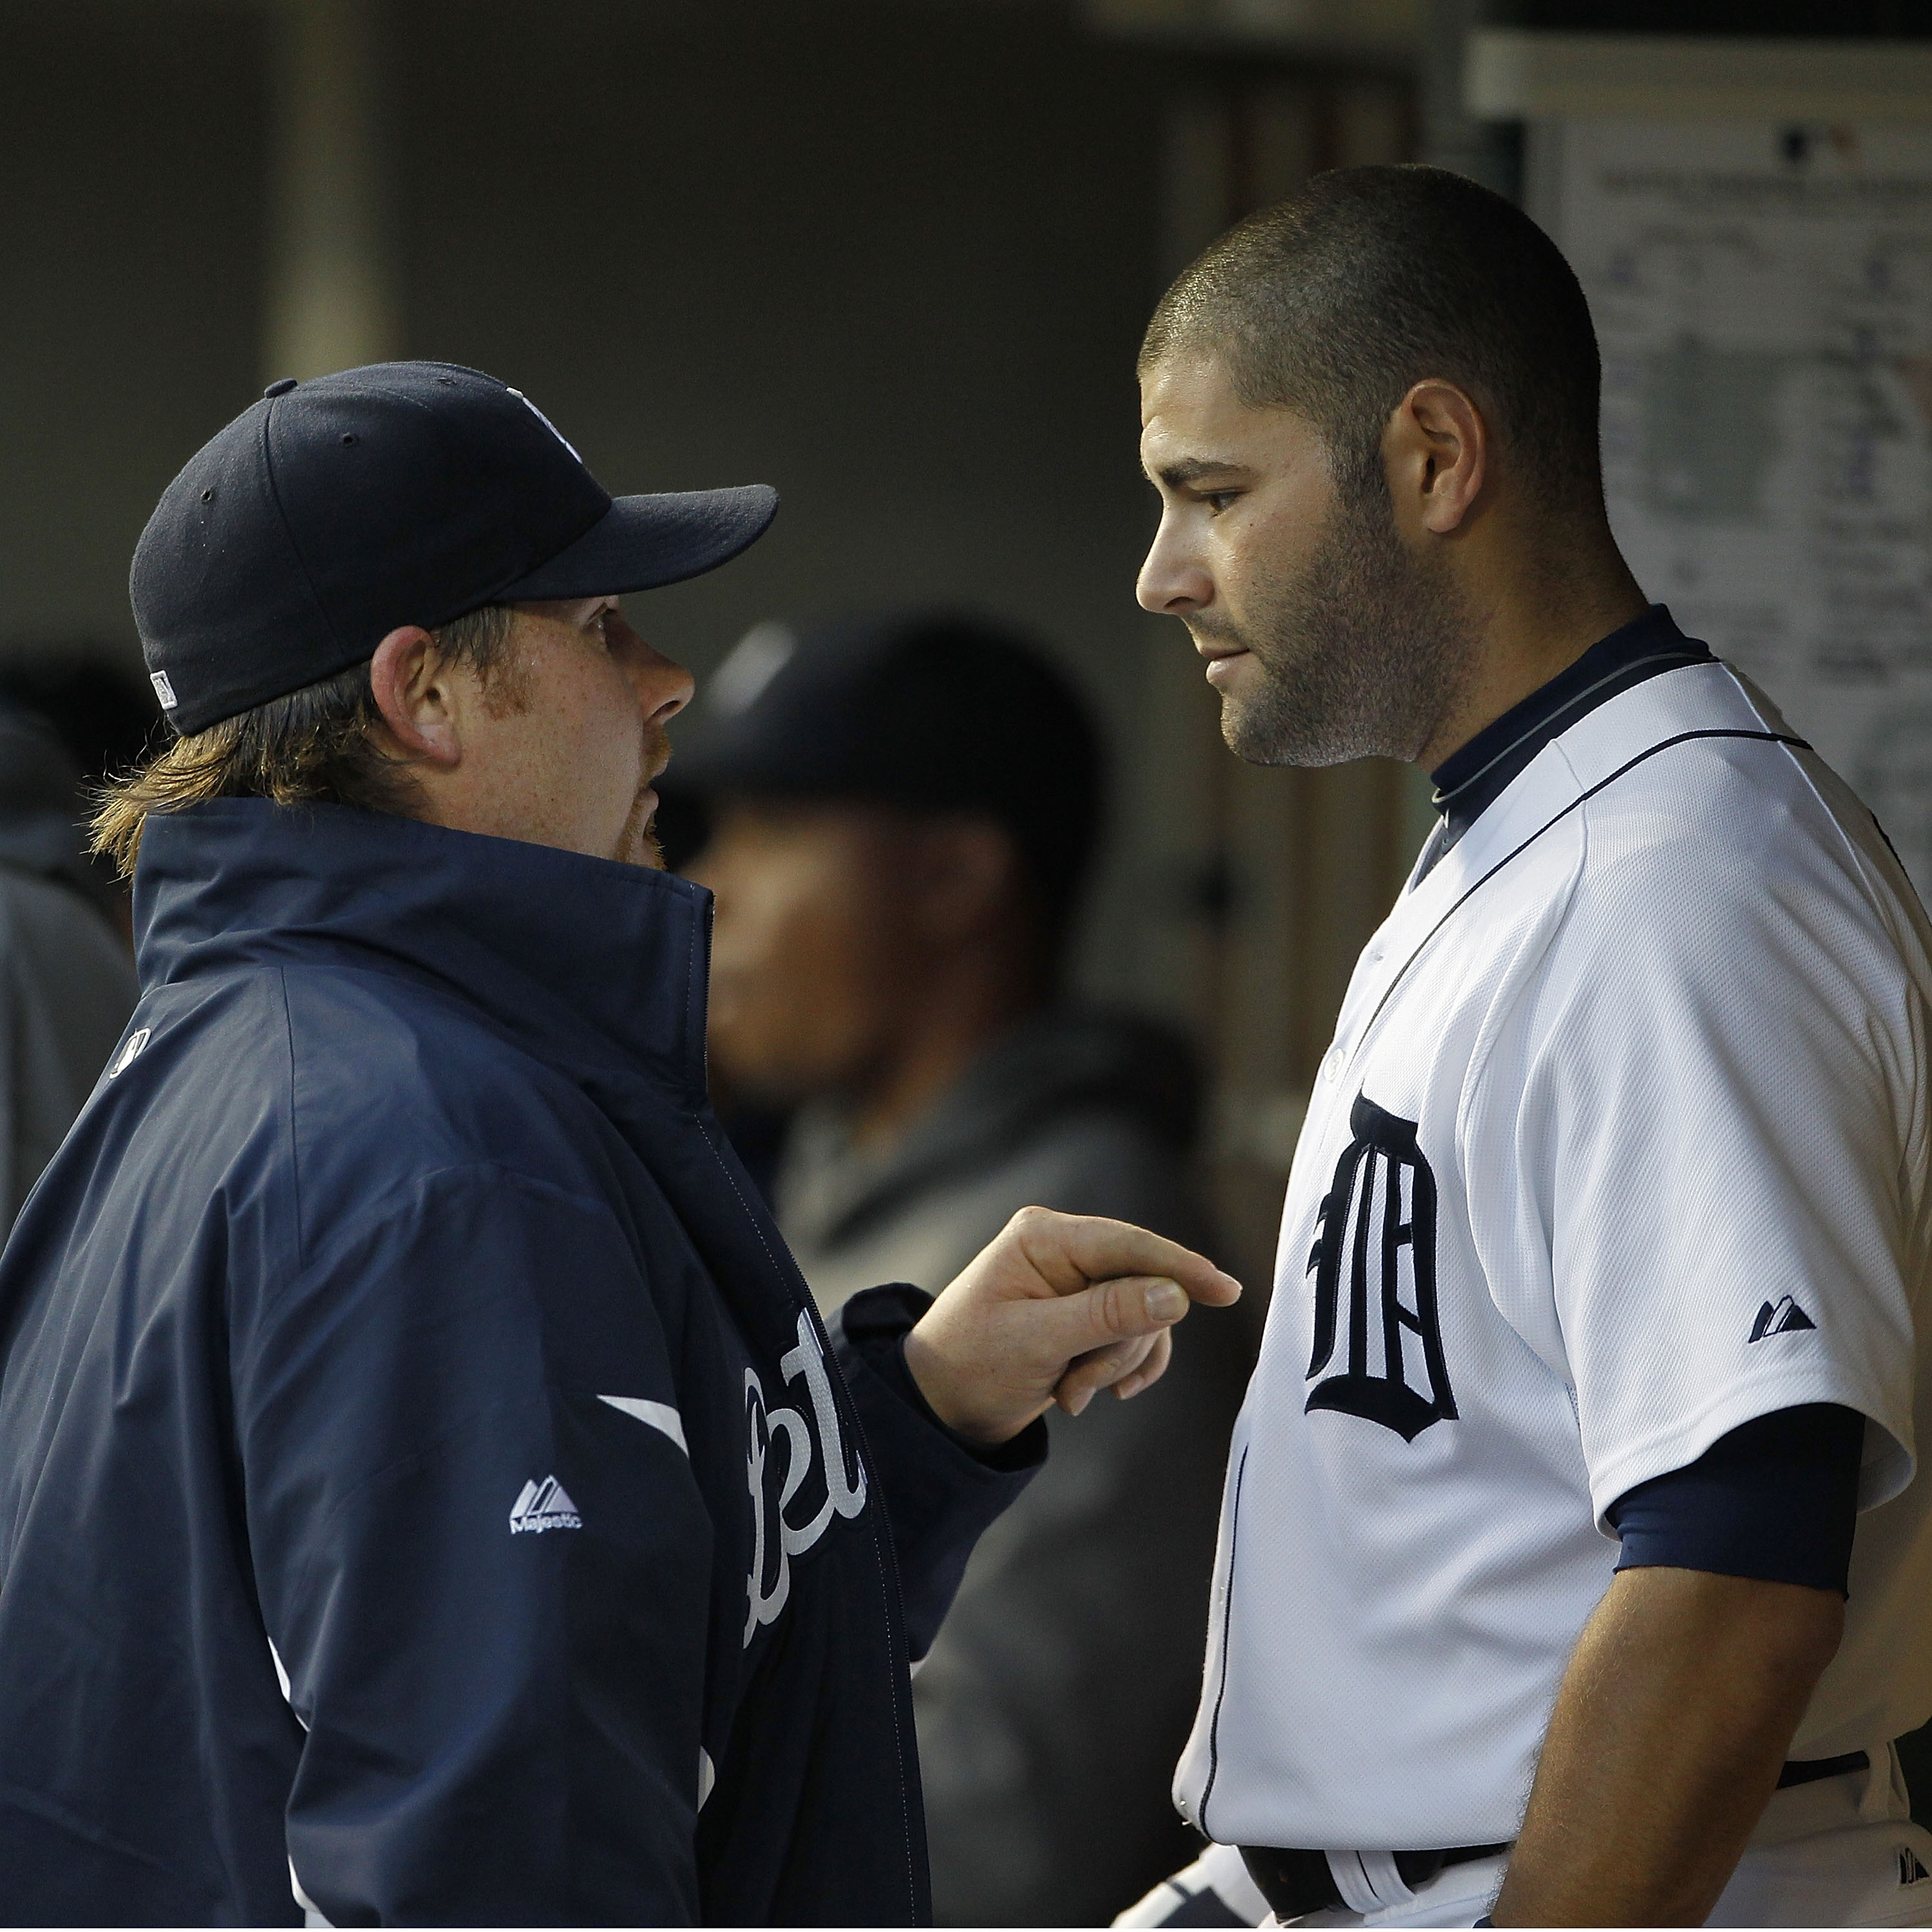 DETROIT - APRIL 26: Phil Coke #40 and Alex Avila #13 of the Detroit Tigers talk in the dugout during the game against the Seattle Mariners at Comerica Park on April 26, 2011 in Detroit, Michigan. The Mariners defeated the Tigers 7-3.  (Photo by Leon Halip